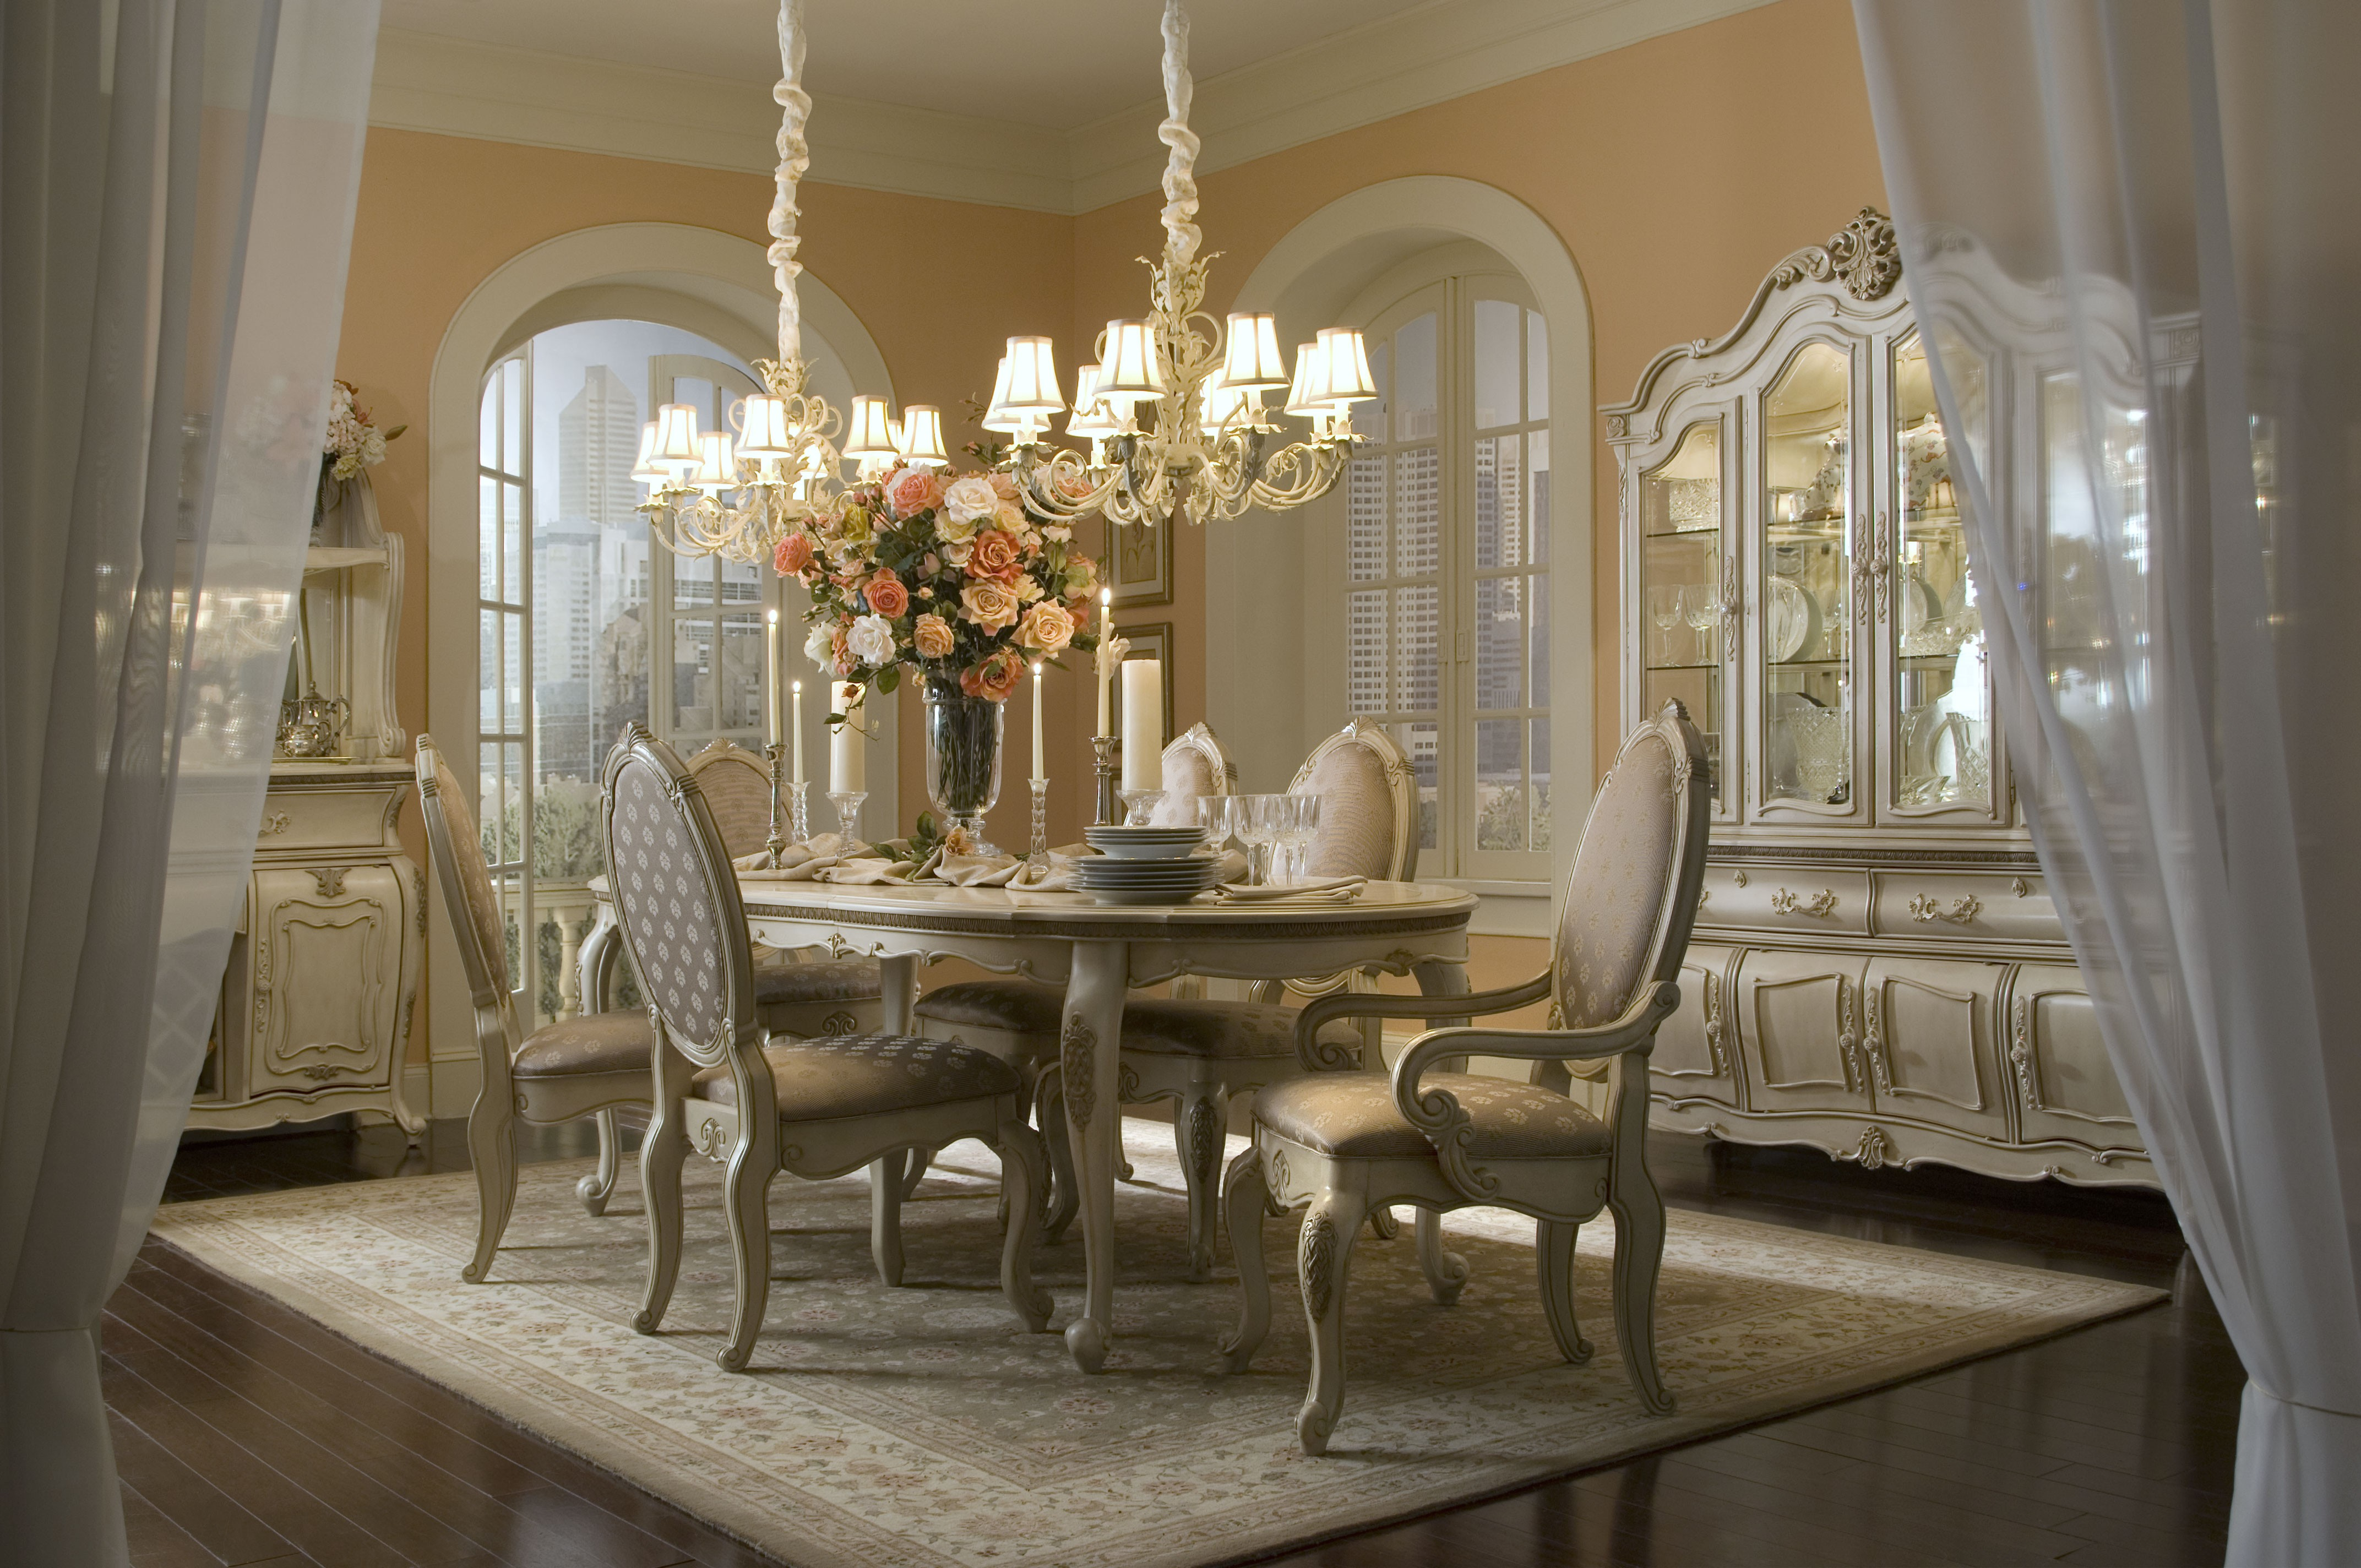 Traditional Antique White Dining Room With Luxury Hanging Lamp (View 3 of 19)